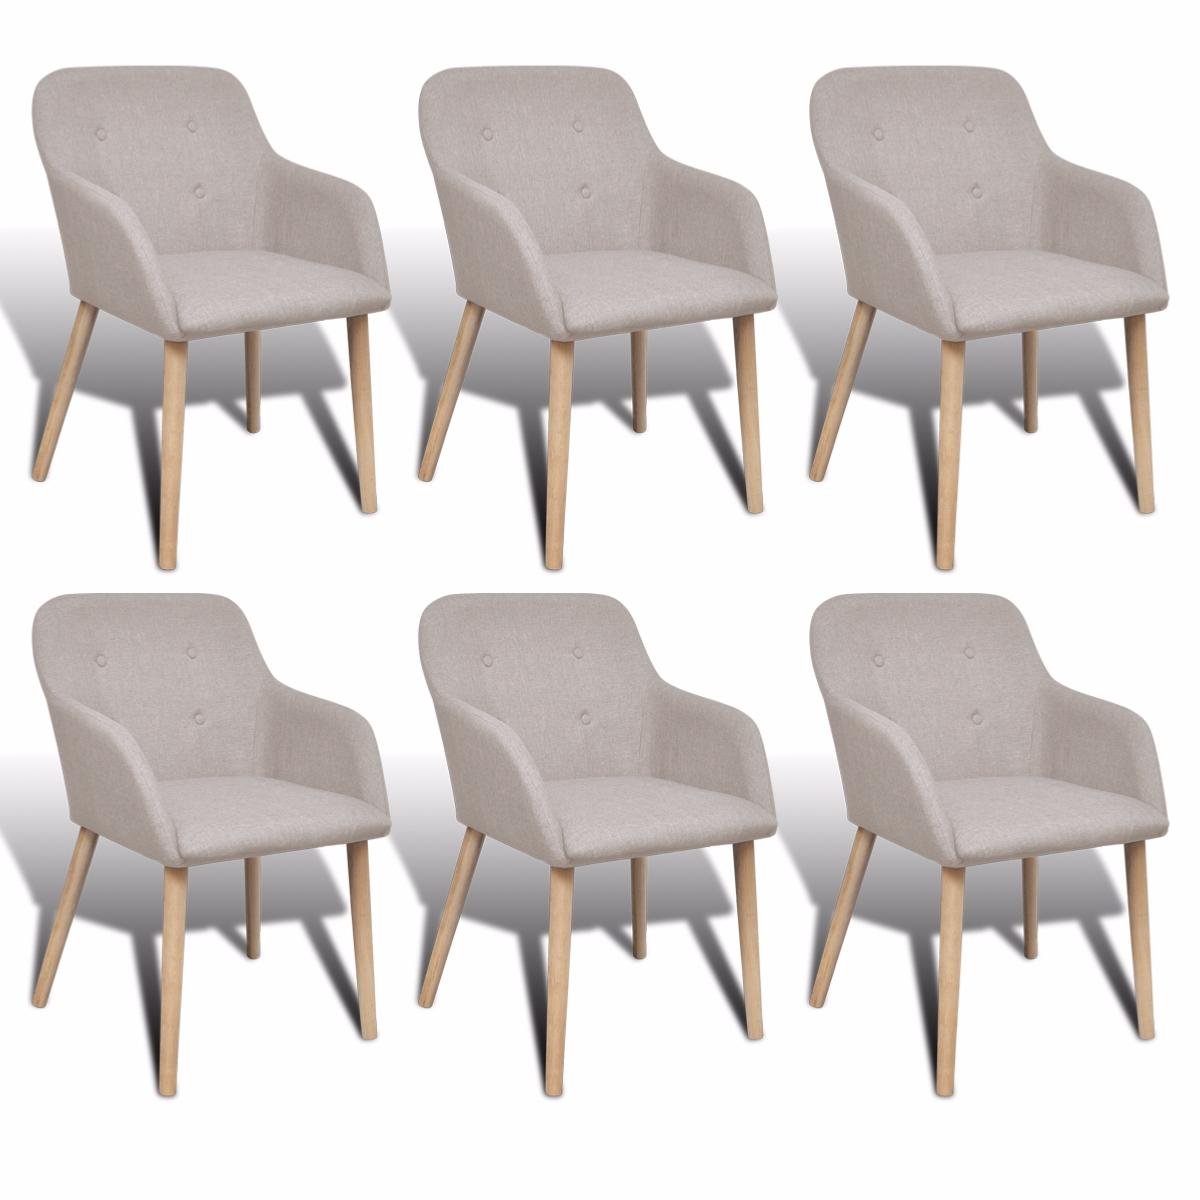 lot de 6 chaises scandinave - Chaise Scandinave